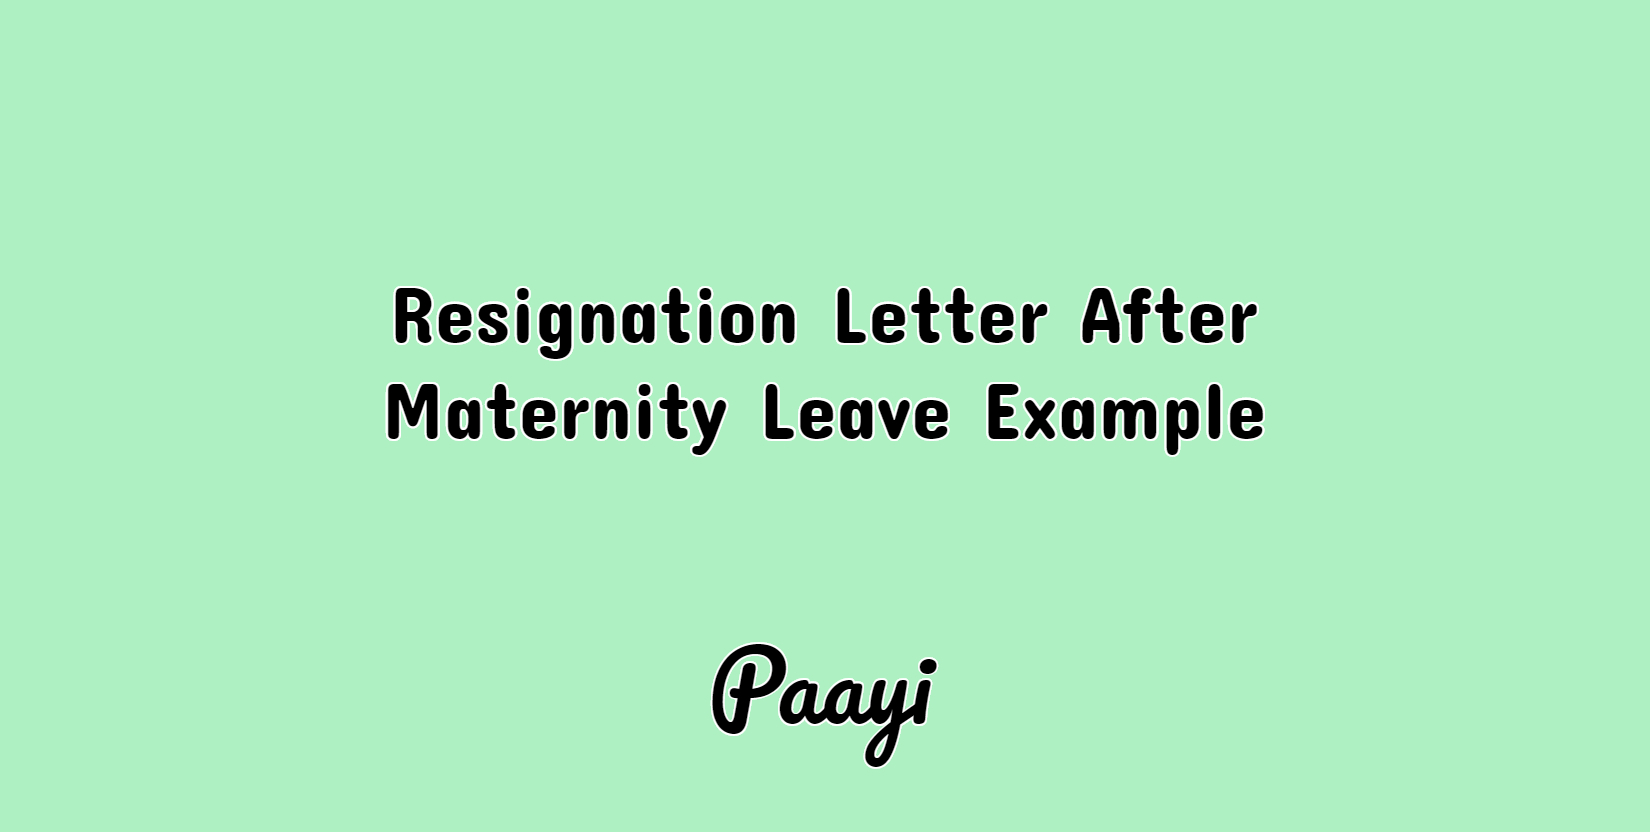 Resignation Letter After Maternity Leave Example | Paayi